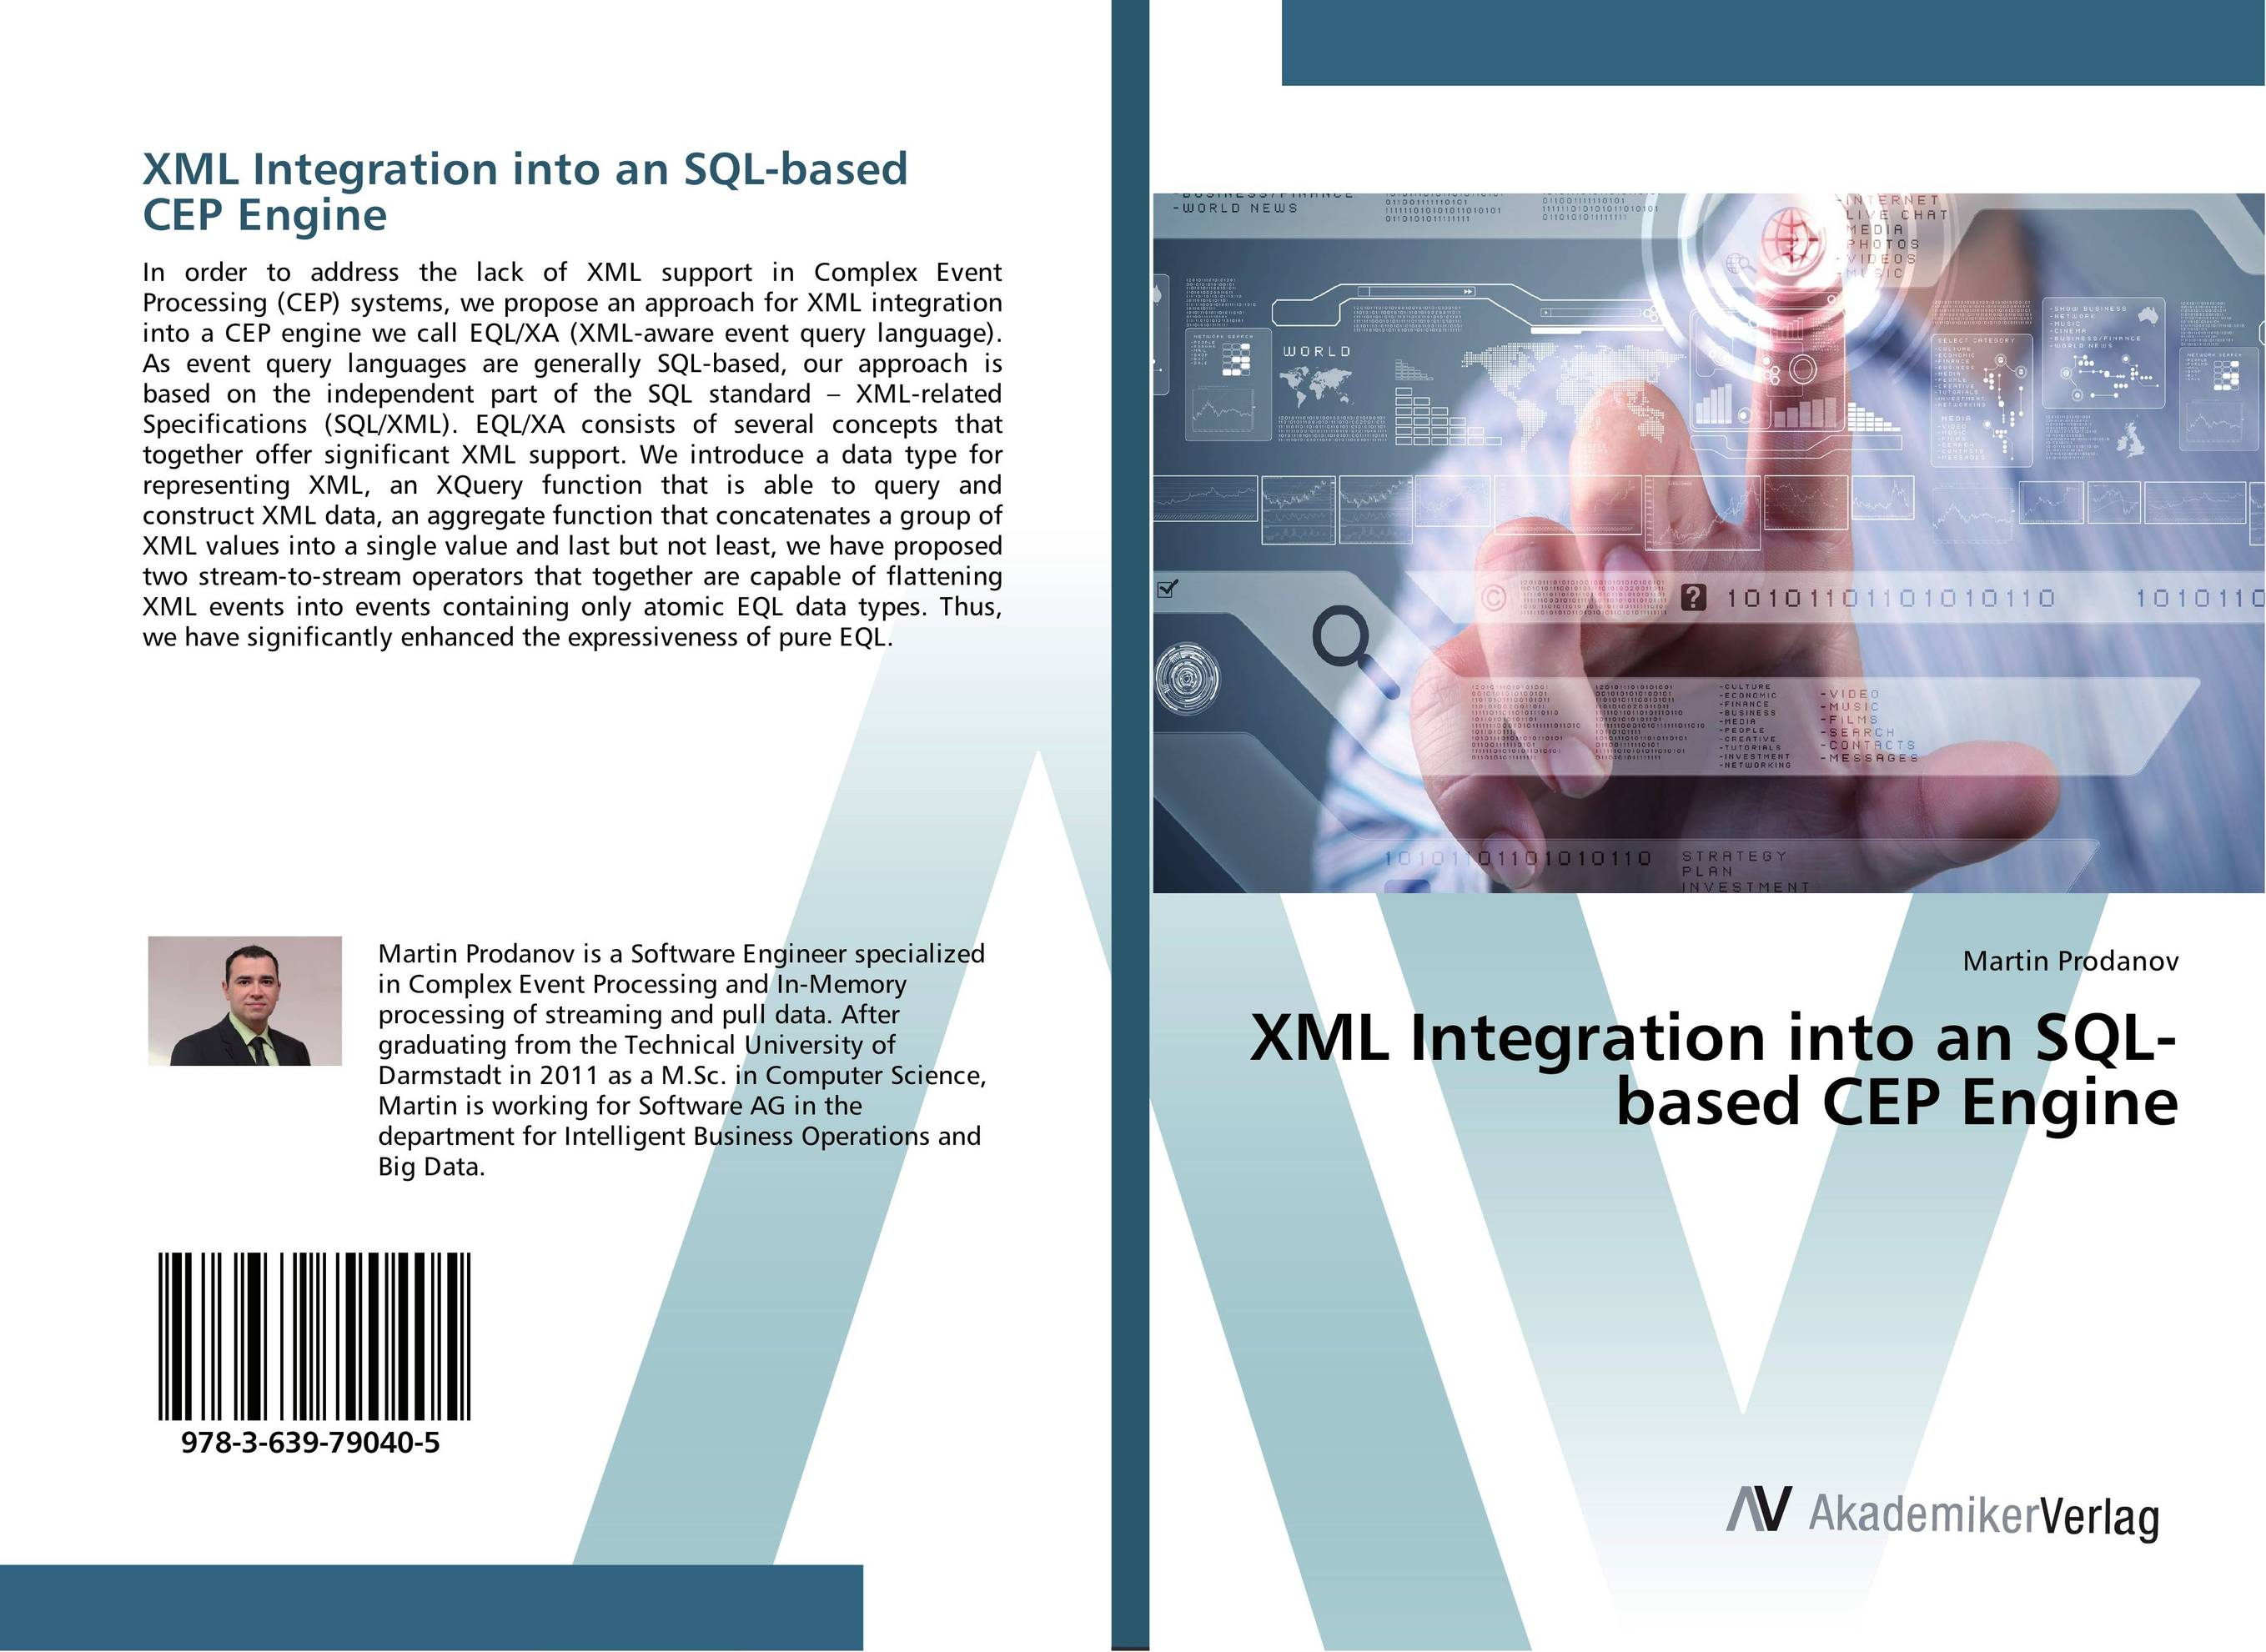 XML Integration into an SQL-based CEP Engine sitemap 401 xml